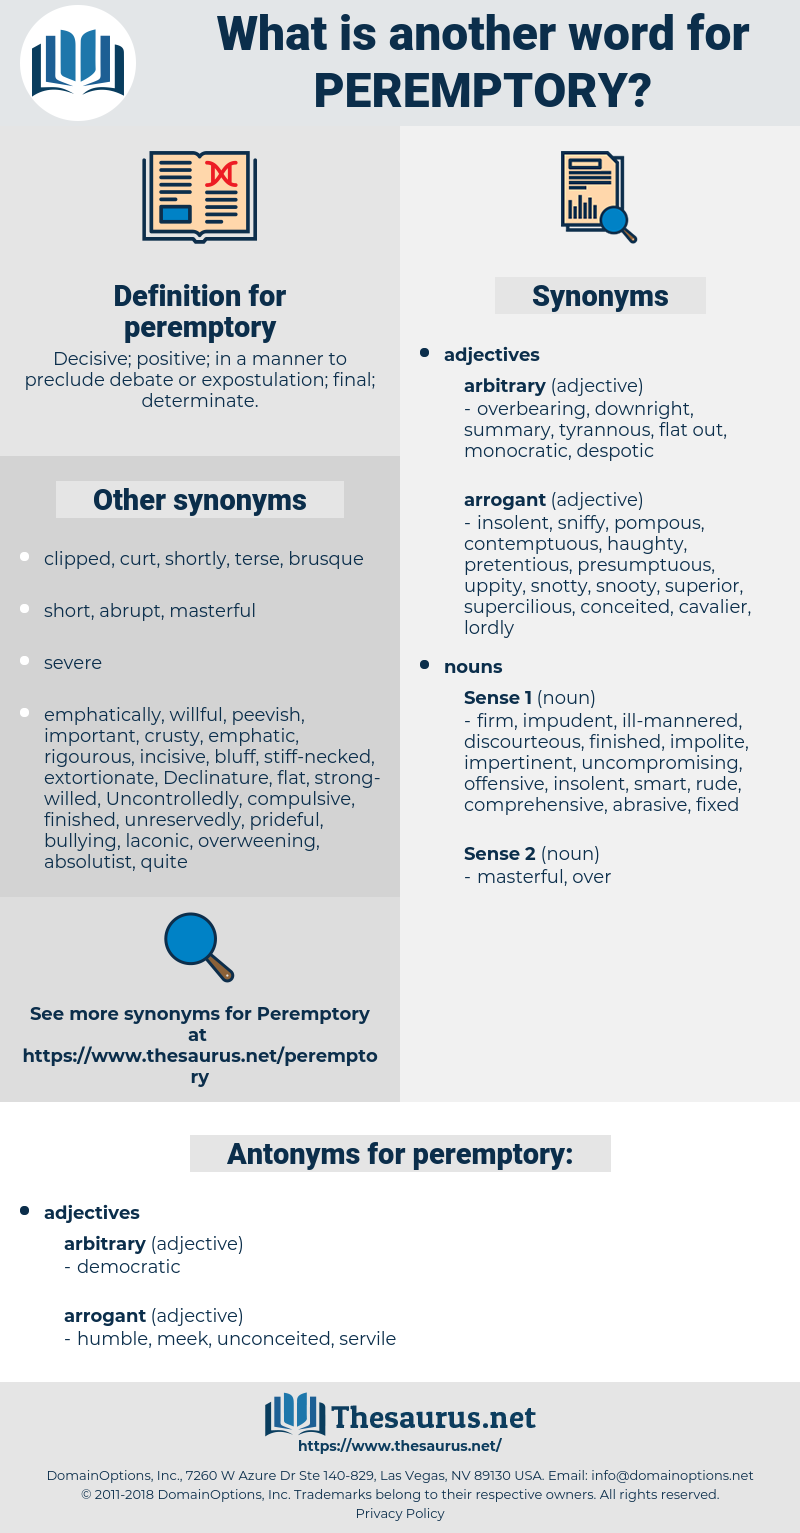 peremptory, synonym peremptory, another word for peremptory, words like peremptory, thesaurus peremptory